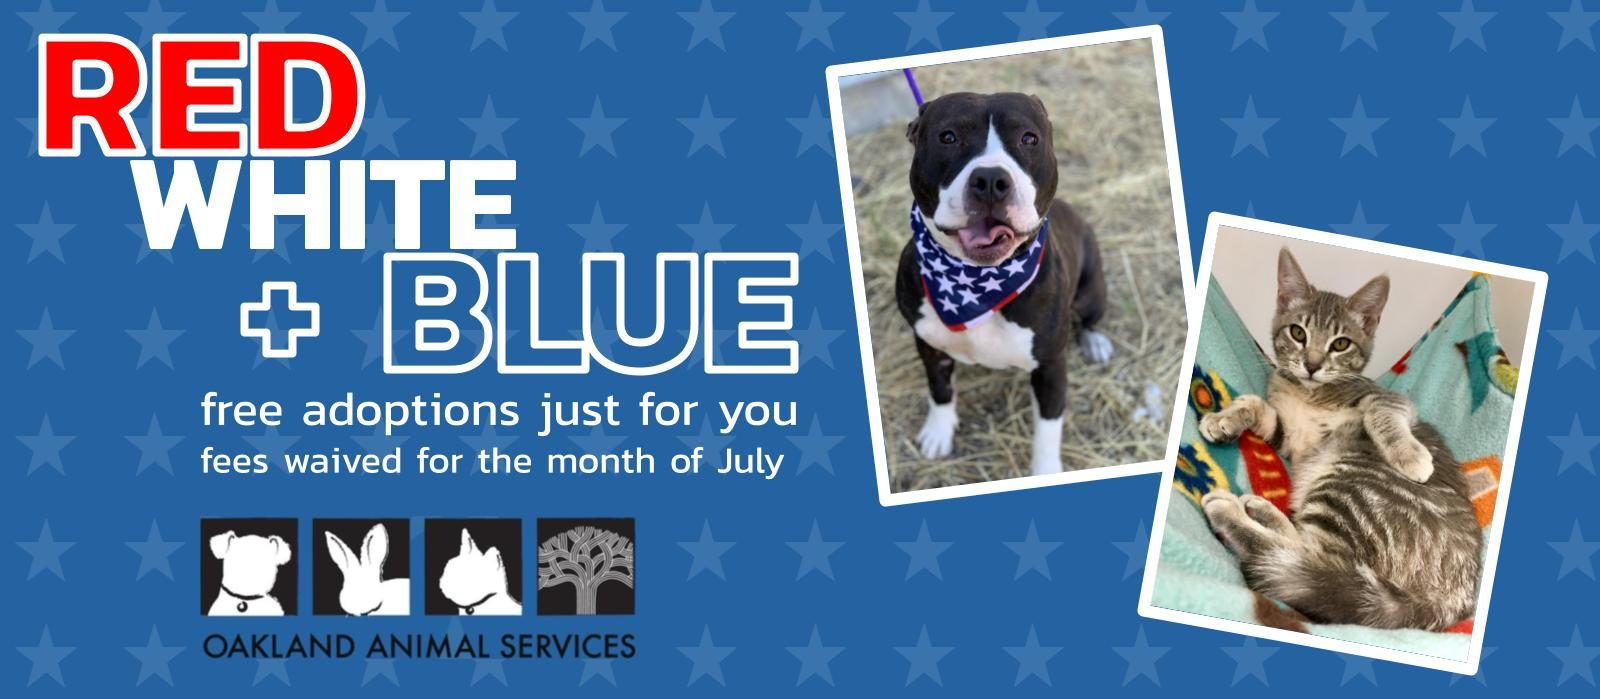 Red, White & Blue – Free Adoptions Just for You!